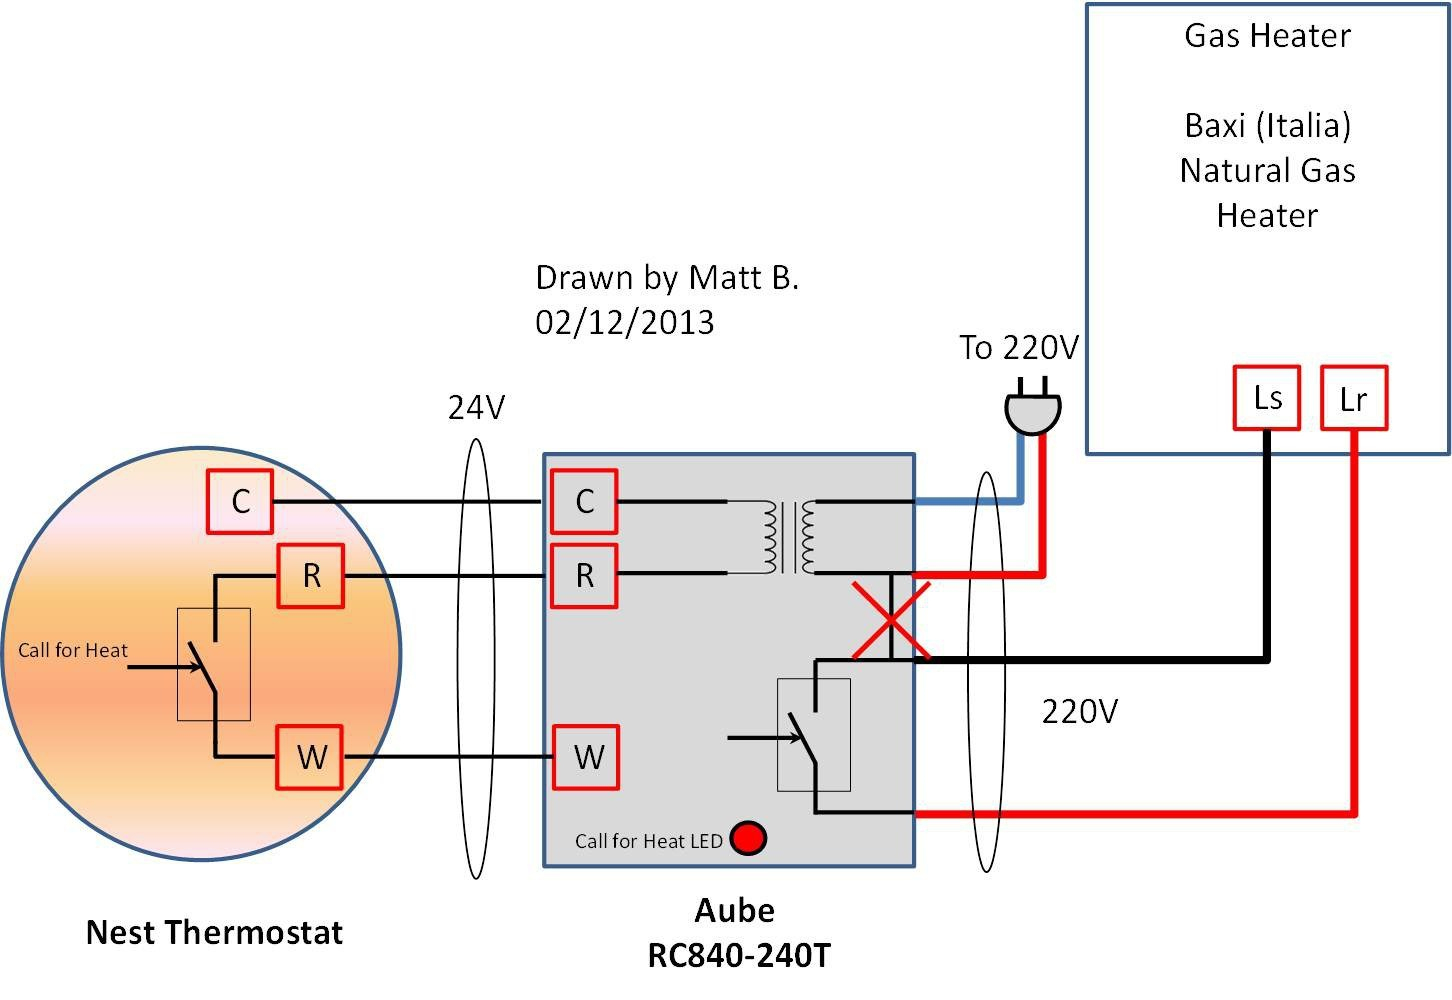 Wiring Diagram For Nest Thermostat Uk | Wiring Diagram - Nest Alt Heat Wiring Diagram